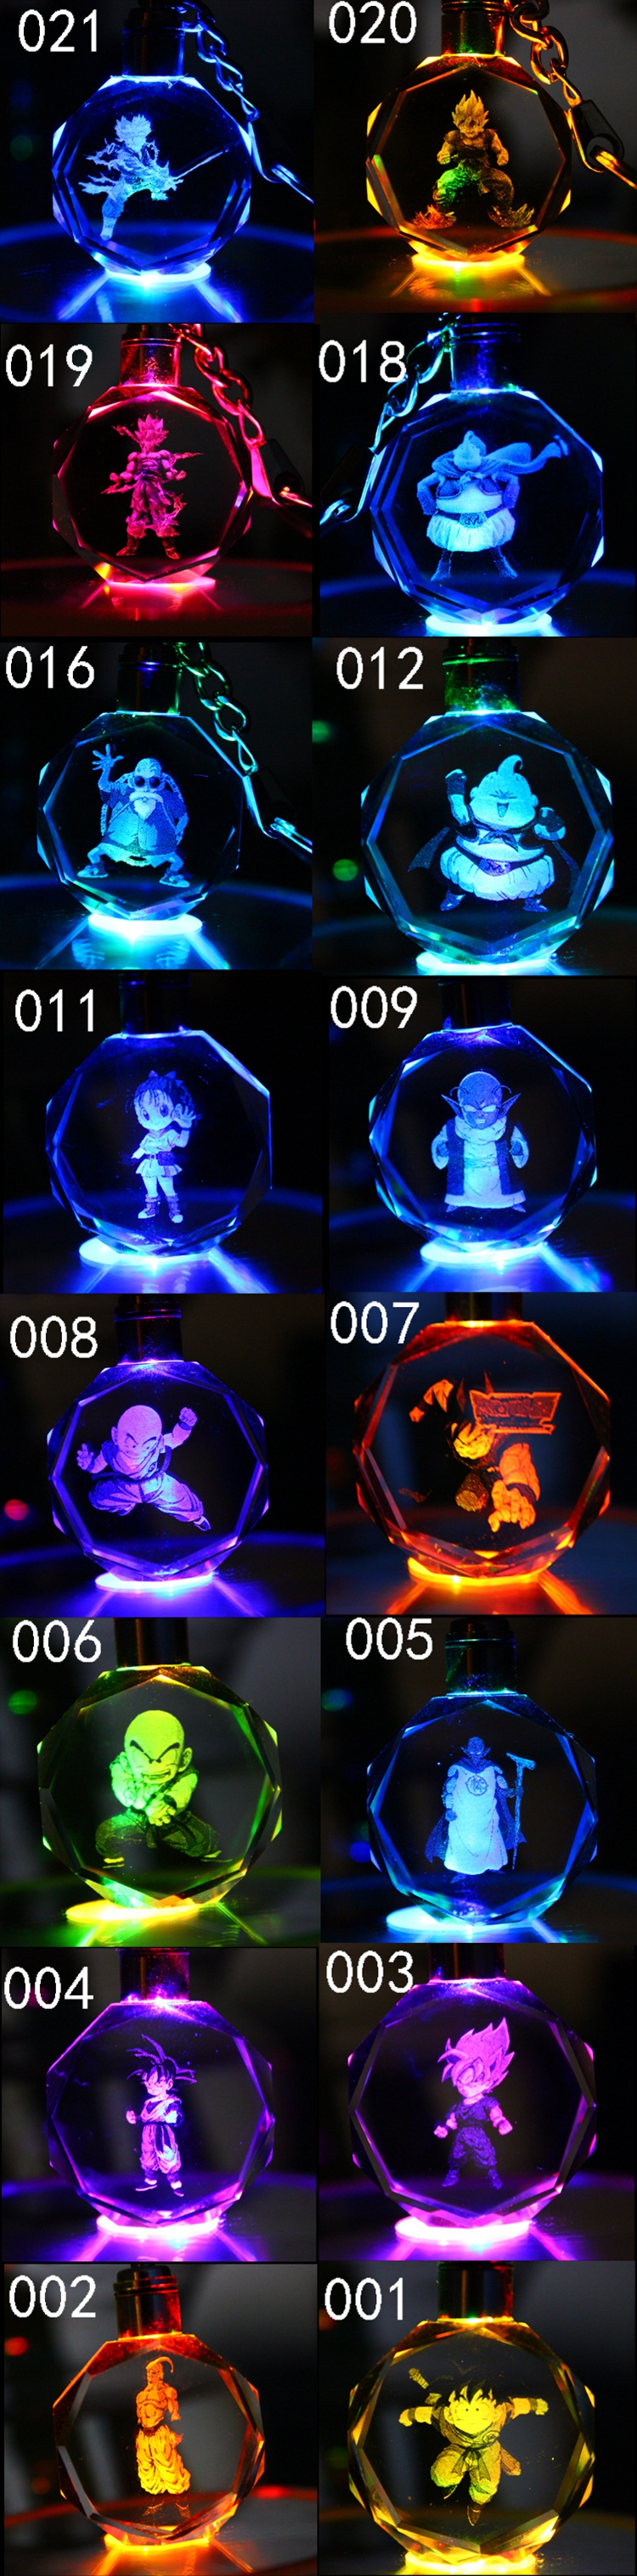 Dragon Ball Z Figure Keychain in number order